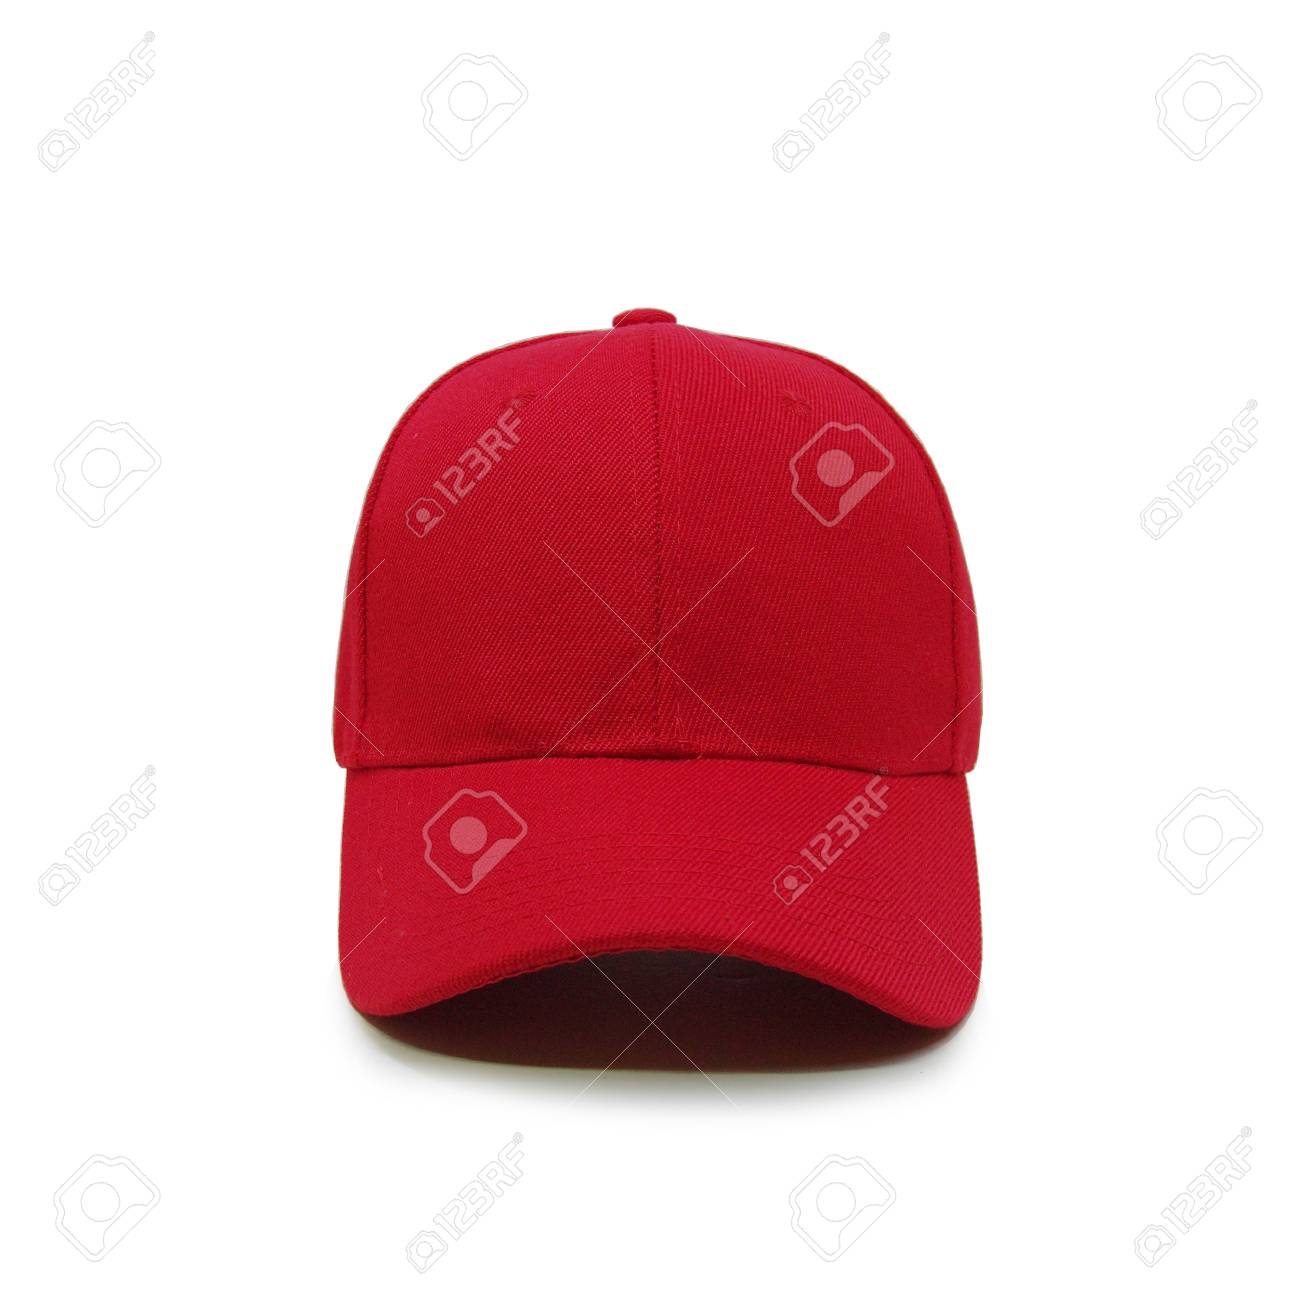 555d7e2d7cd Mock up blank baseball cap red front view on white background Stock Photo -  75314828